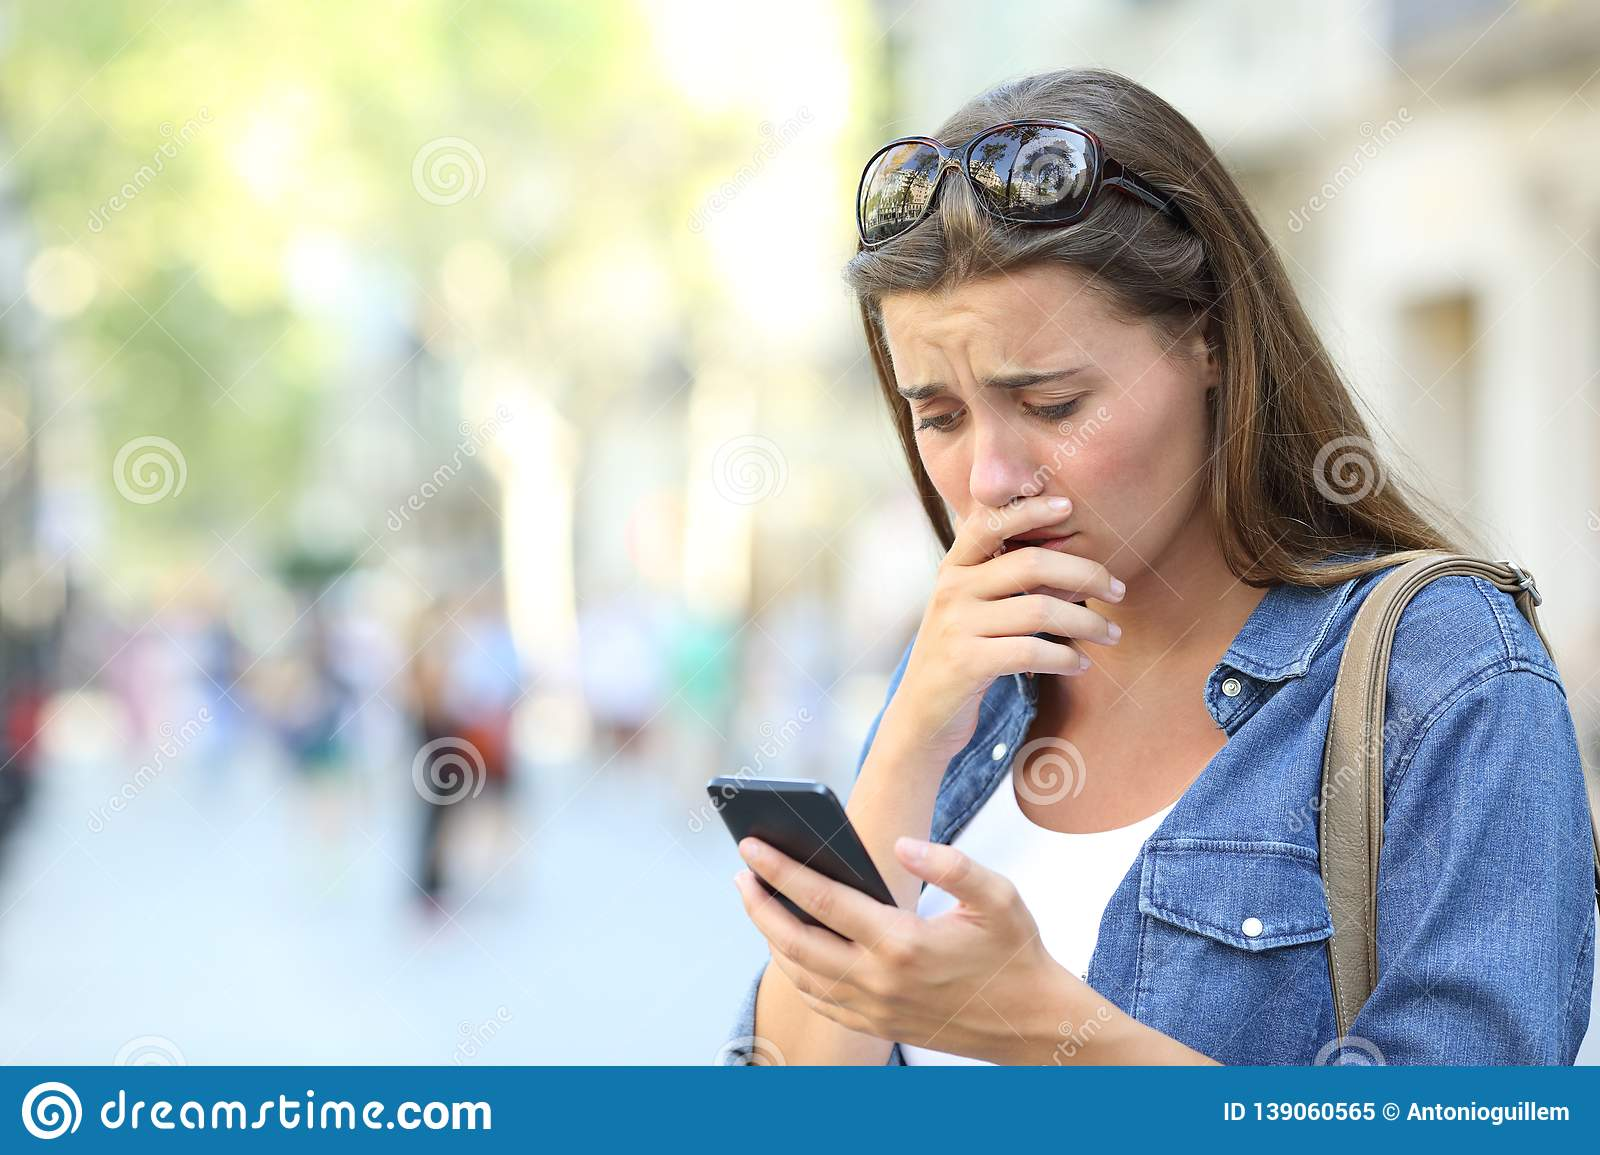 Sad girl checking phone content in the street